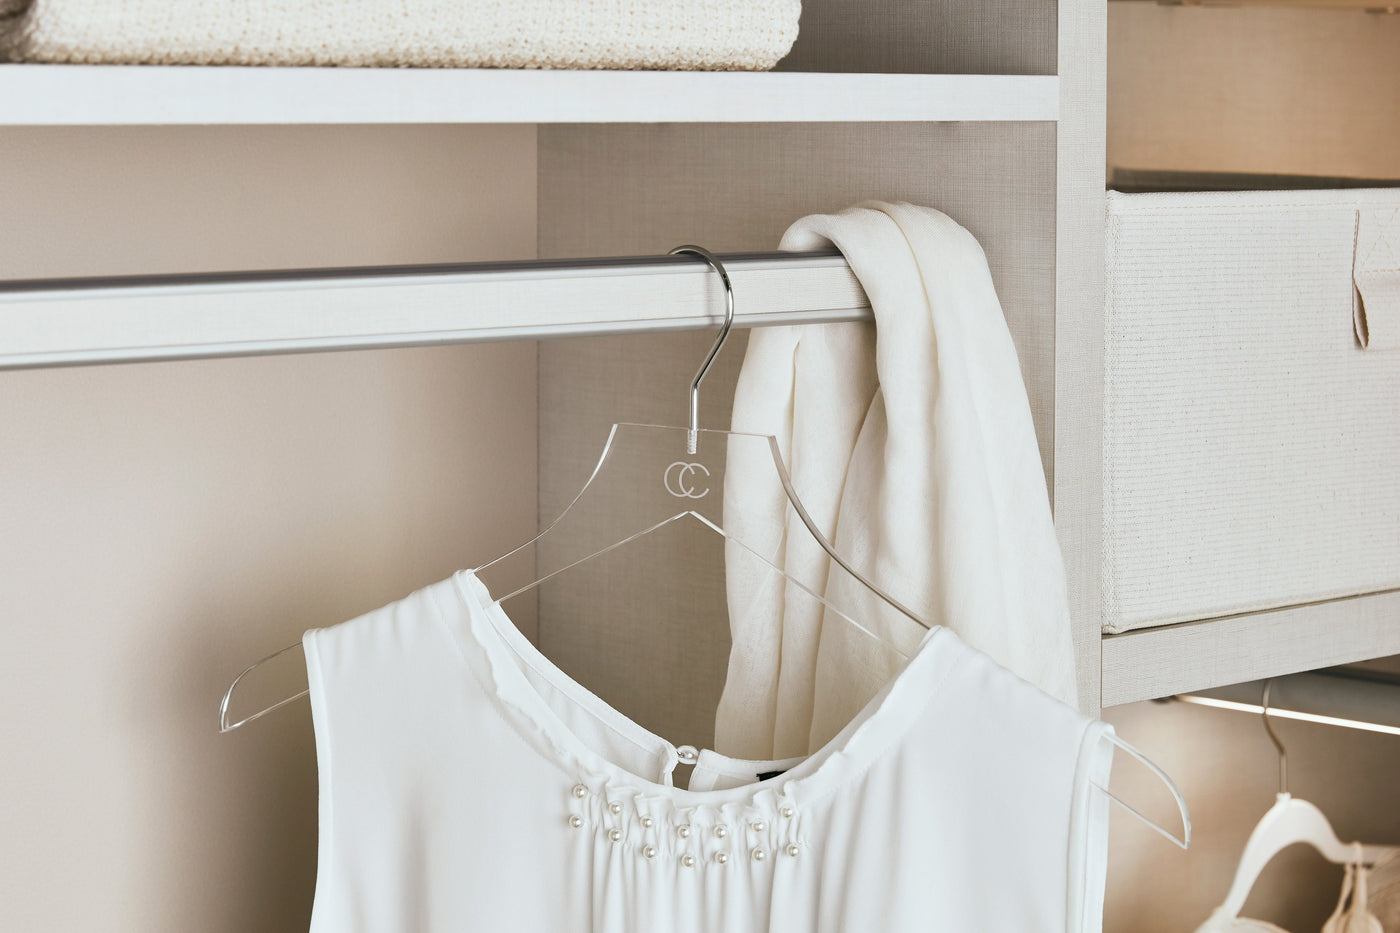 Acrylic Hangers Collection by California Closets Essentials